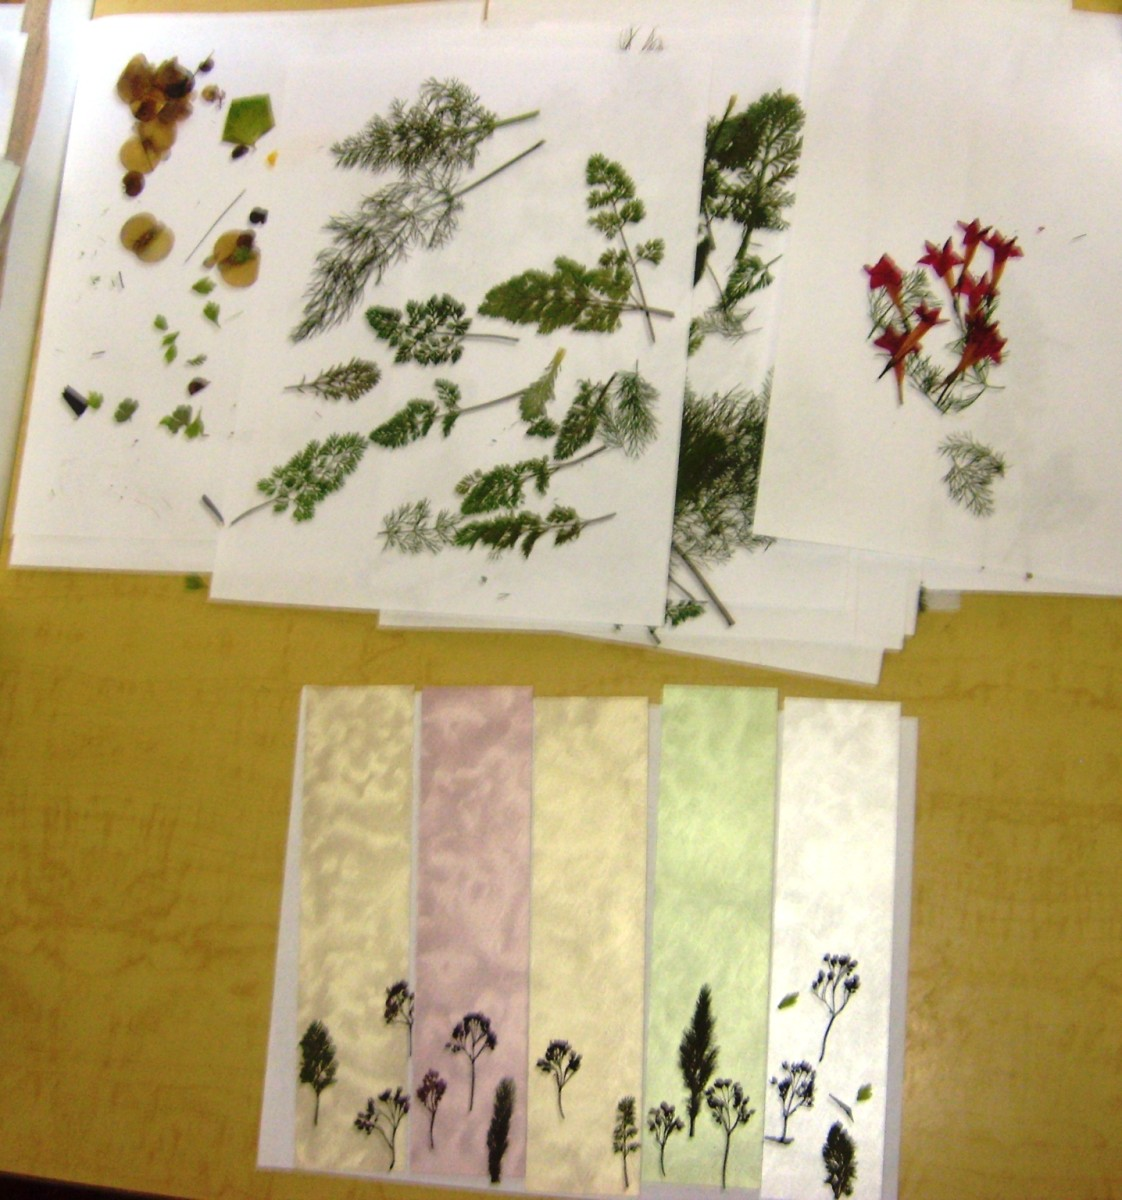 Arrange many pages of pressed leaves and flowers so that you have a pallet of shapes and colors to pull from as you create.